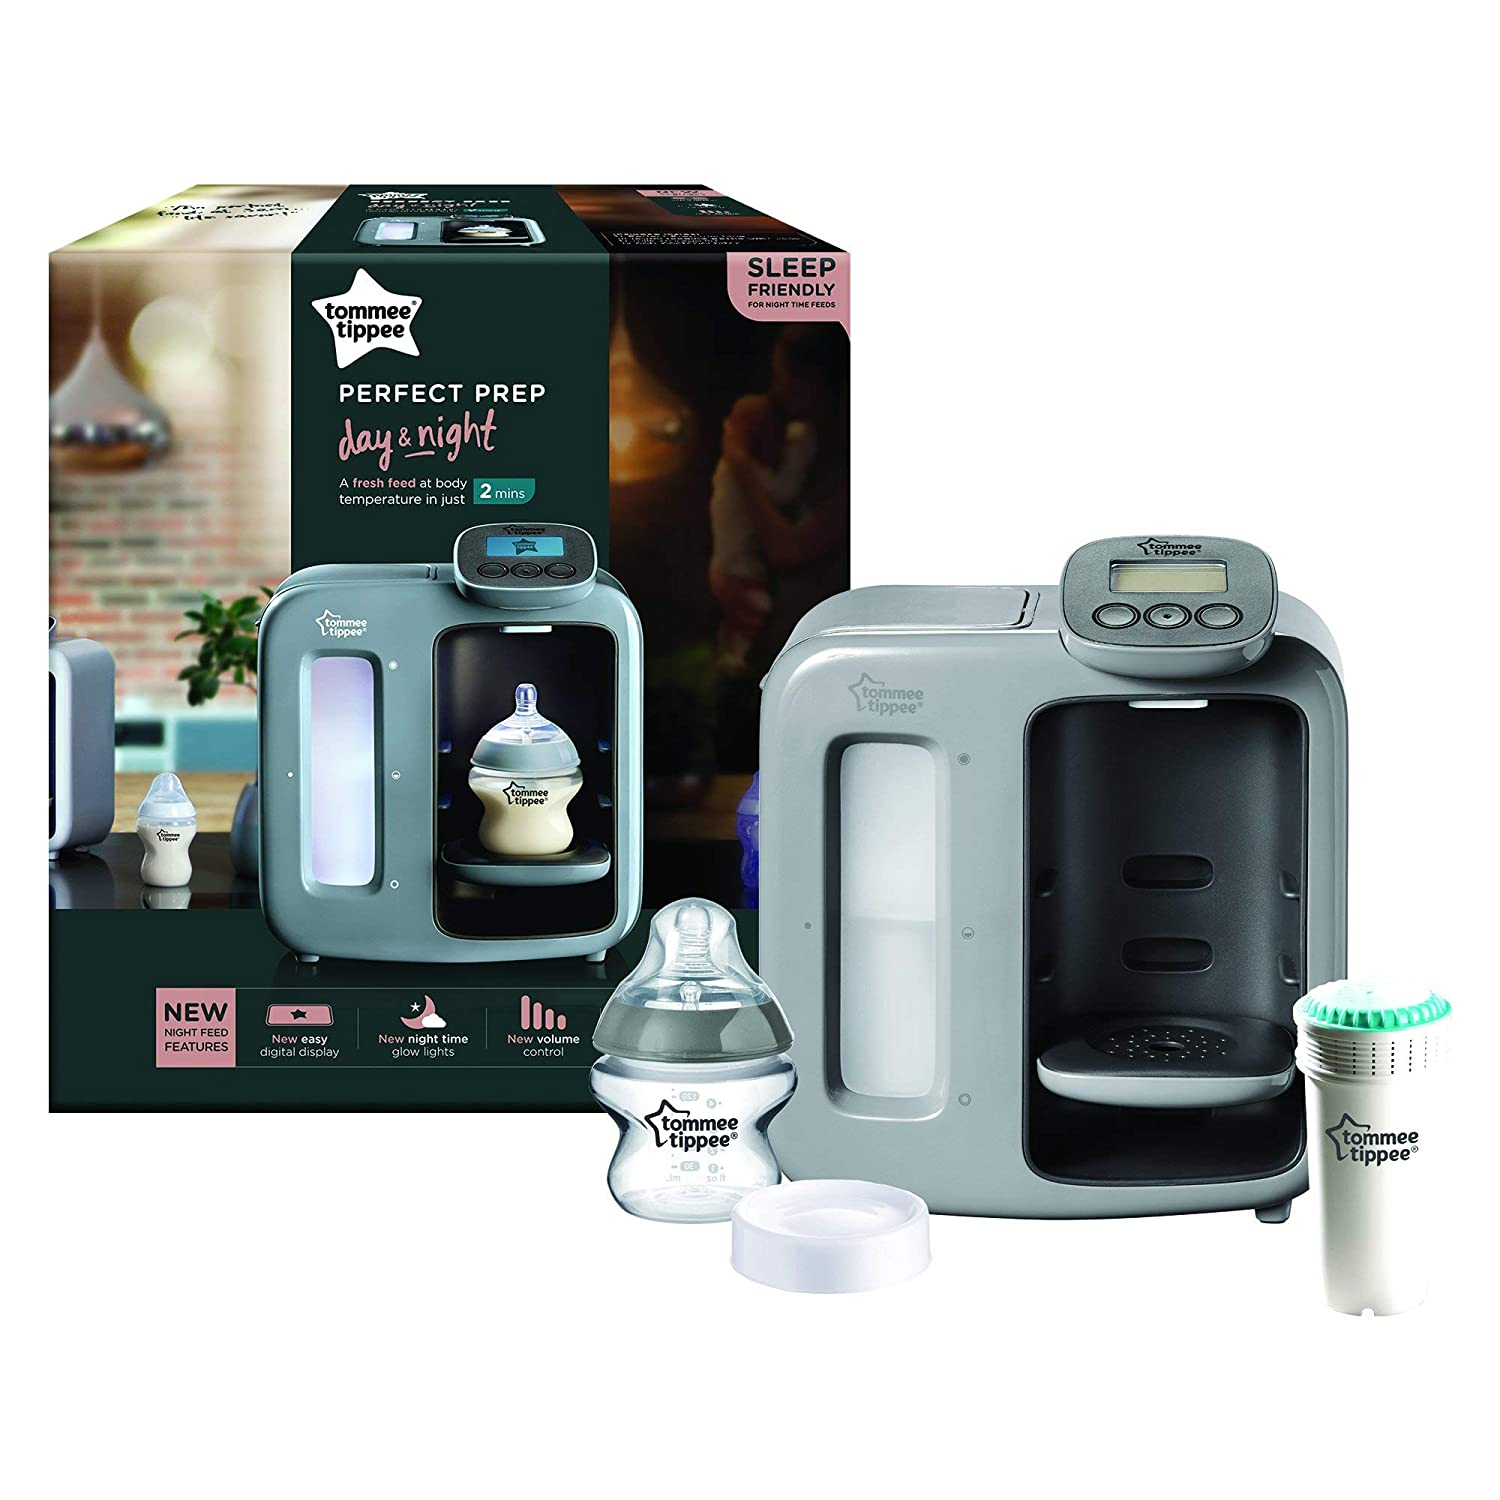 Tommee Tippee Perfect Prep Day & Night gris: Amazon.es: Bebé